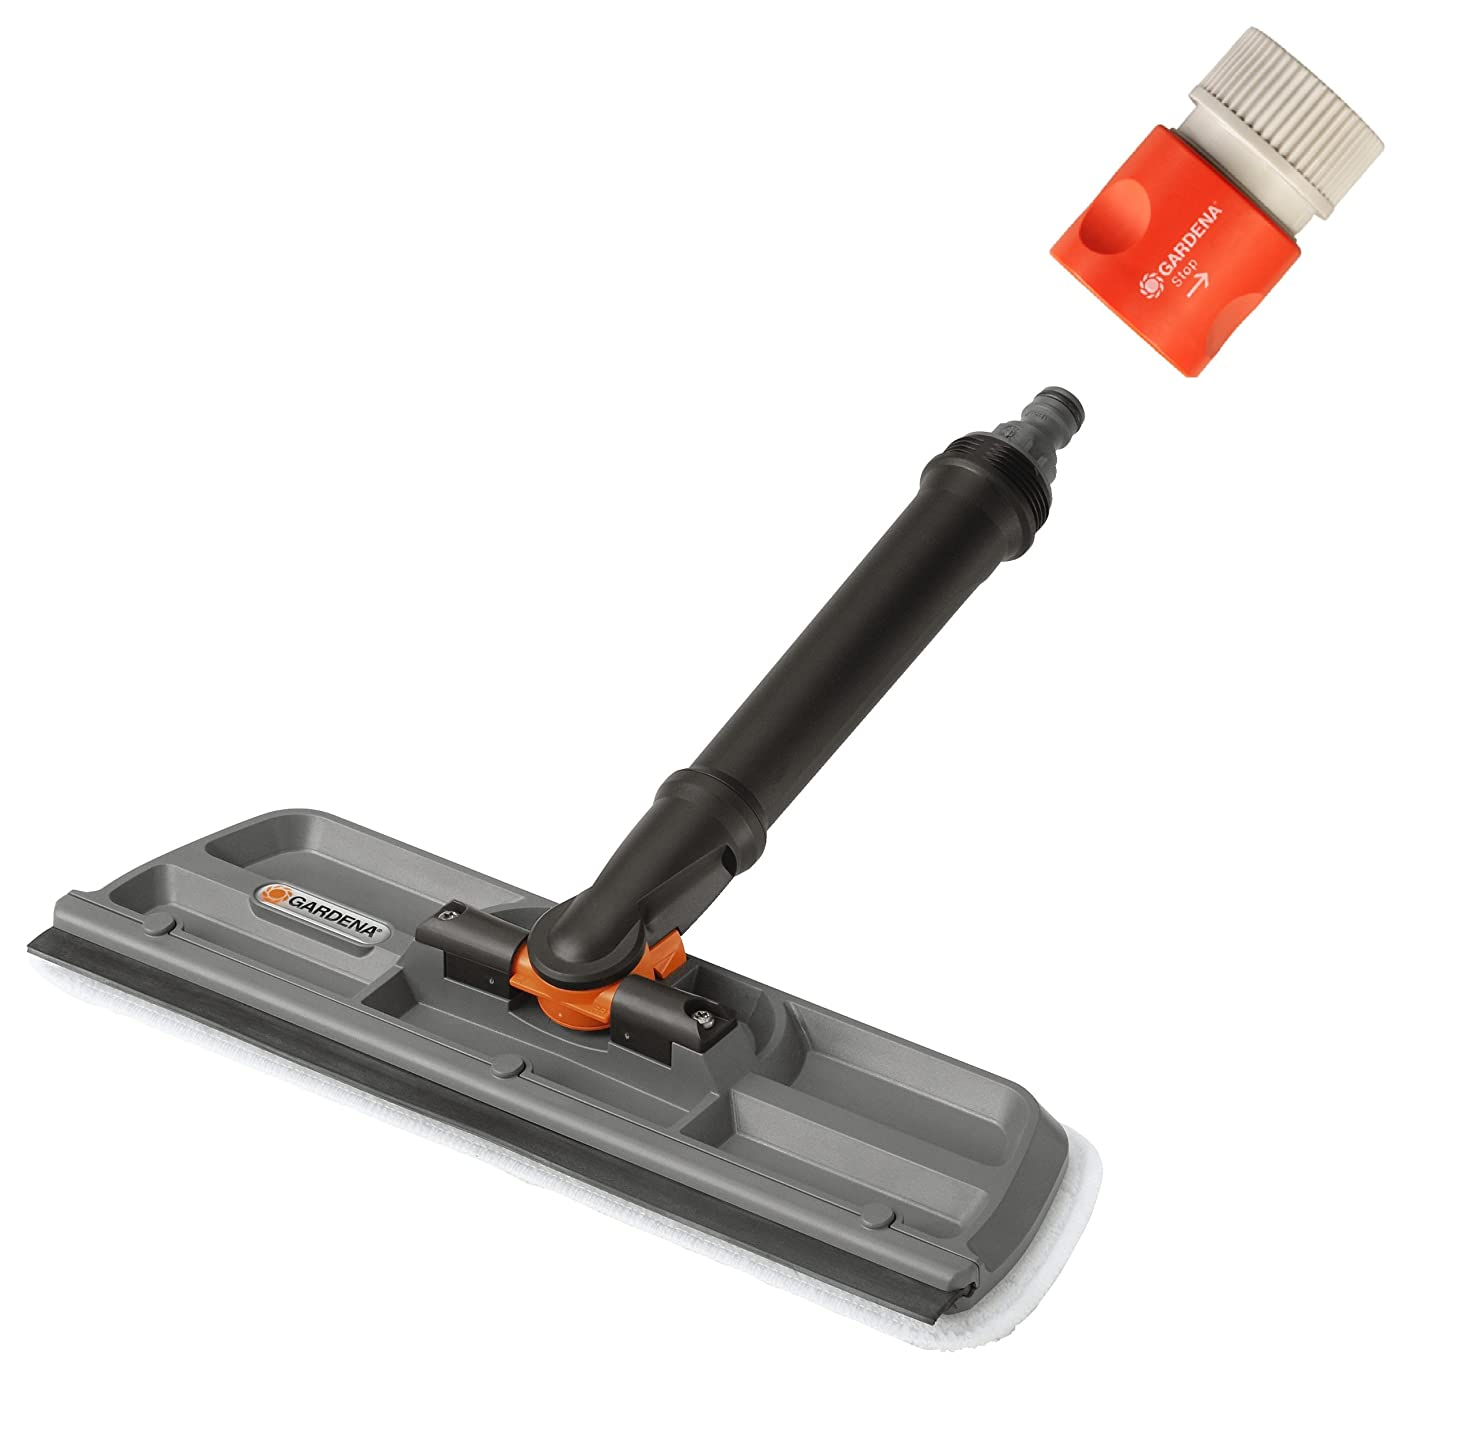 Gardena 5564 Window Cleaner With Wiper And Swivel Elbow